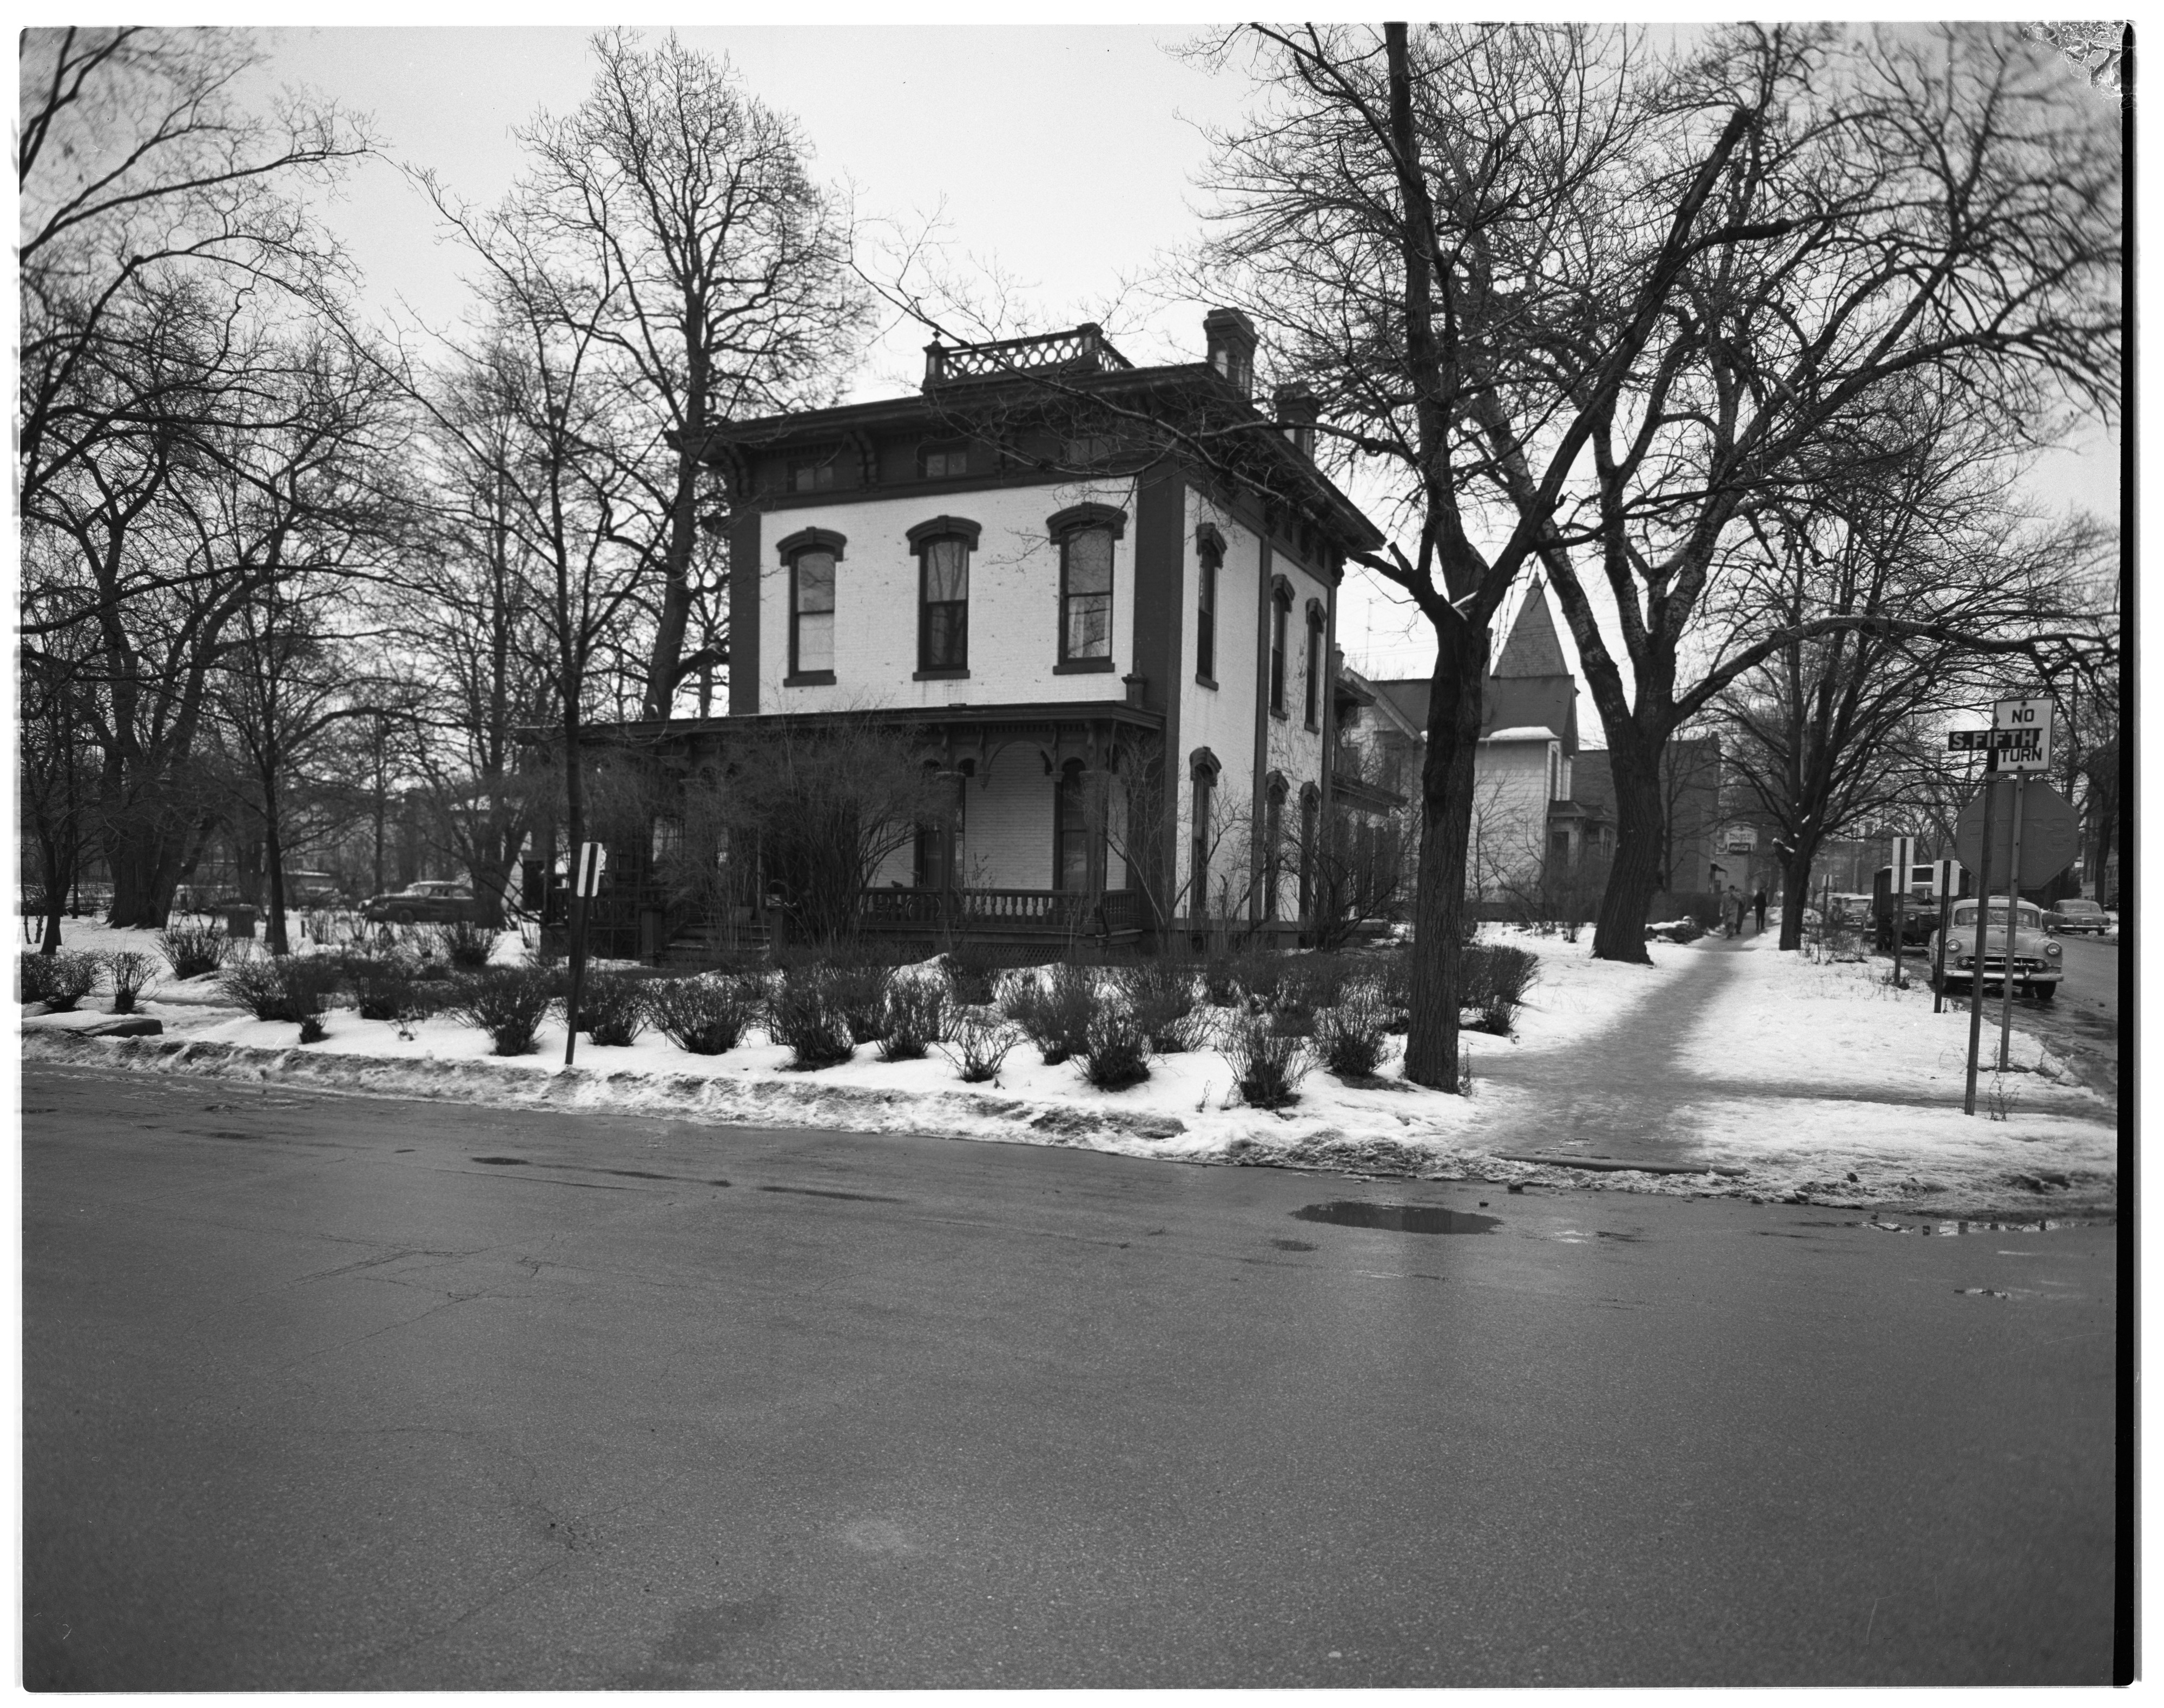 Beal Home, Exterior, February 1956 image